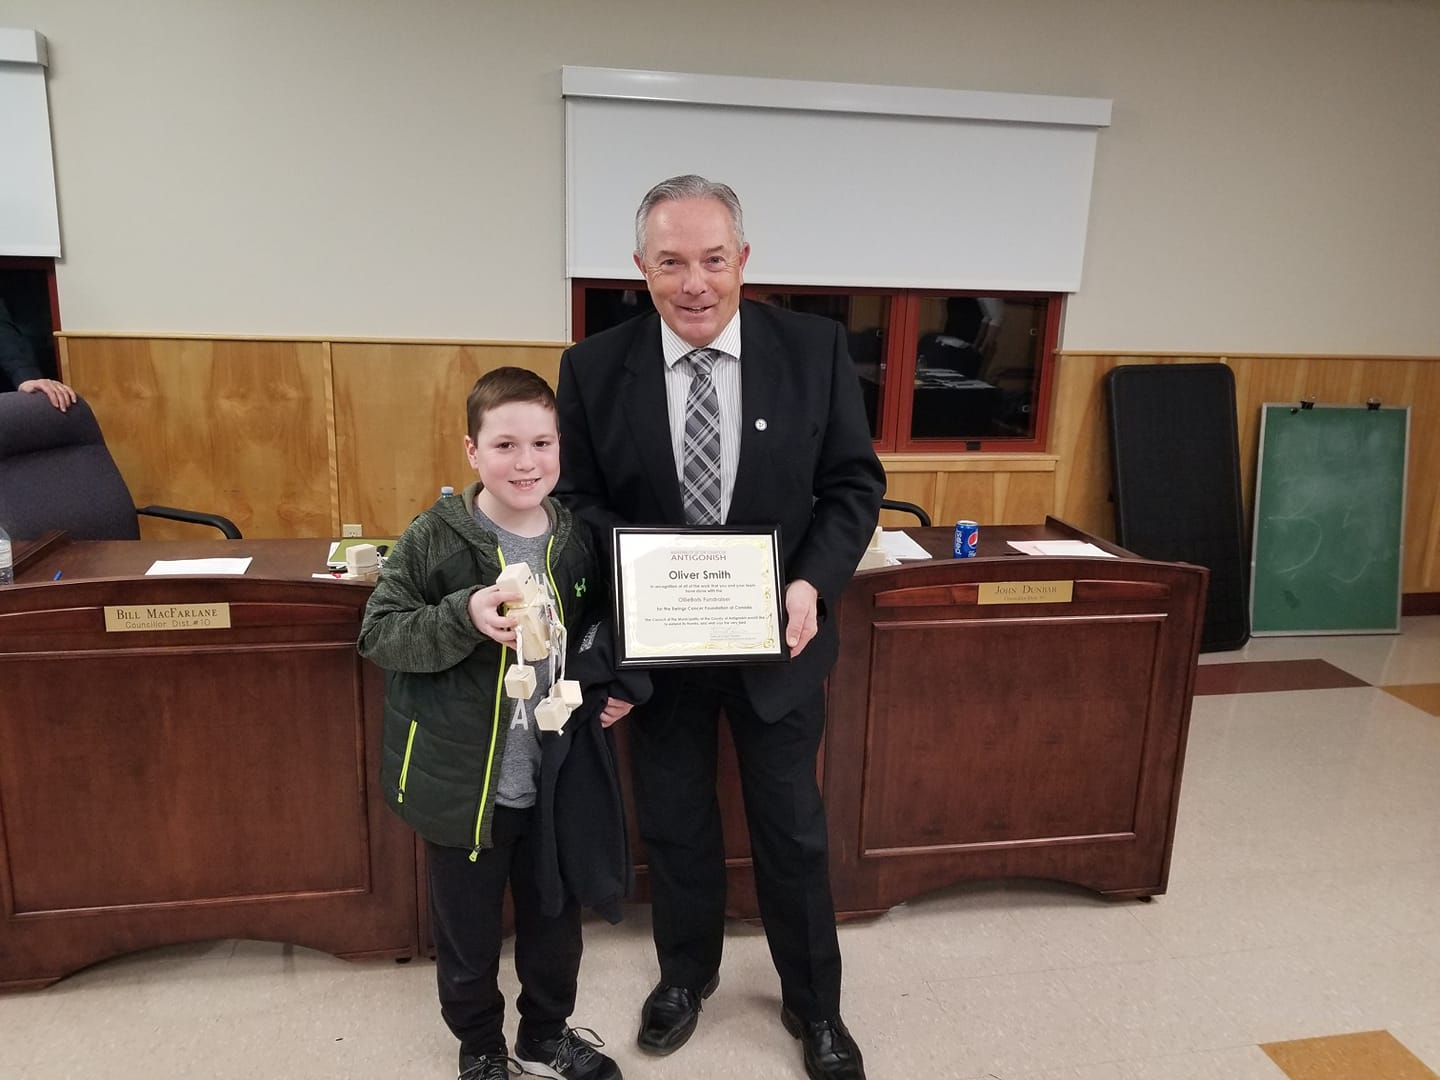 Local boy presents OllieBots to municipal councillors